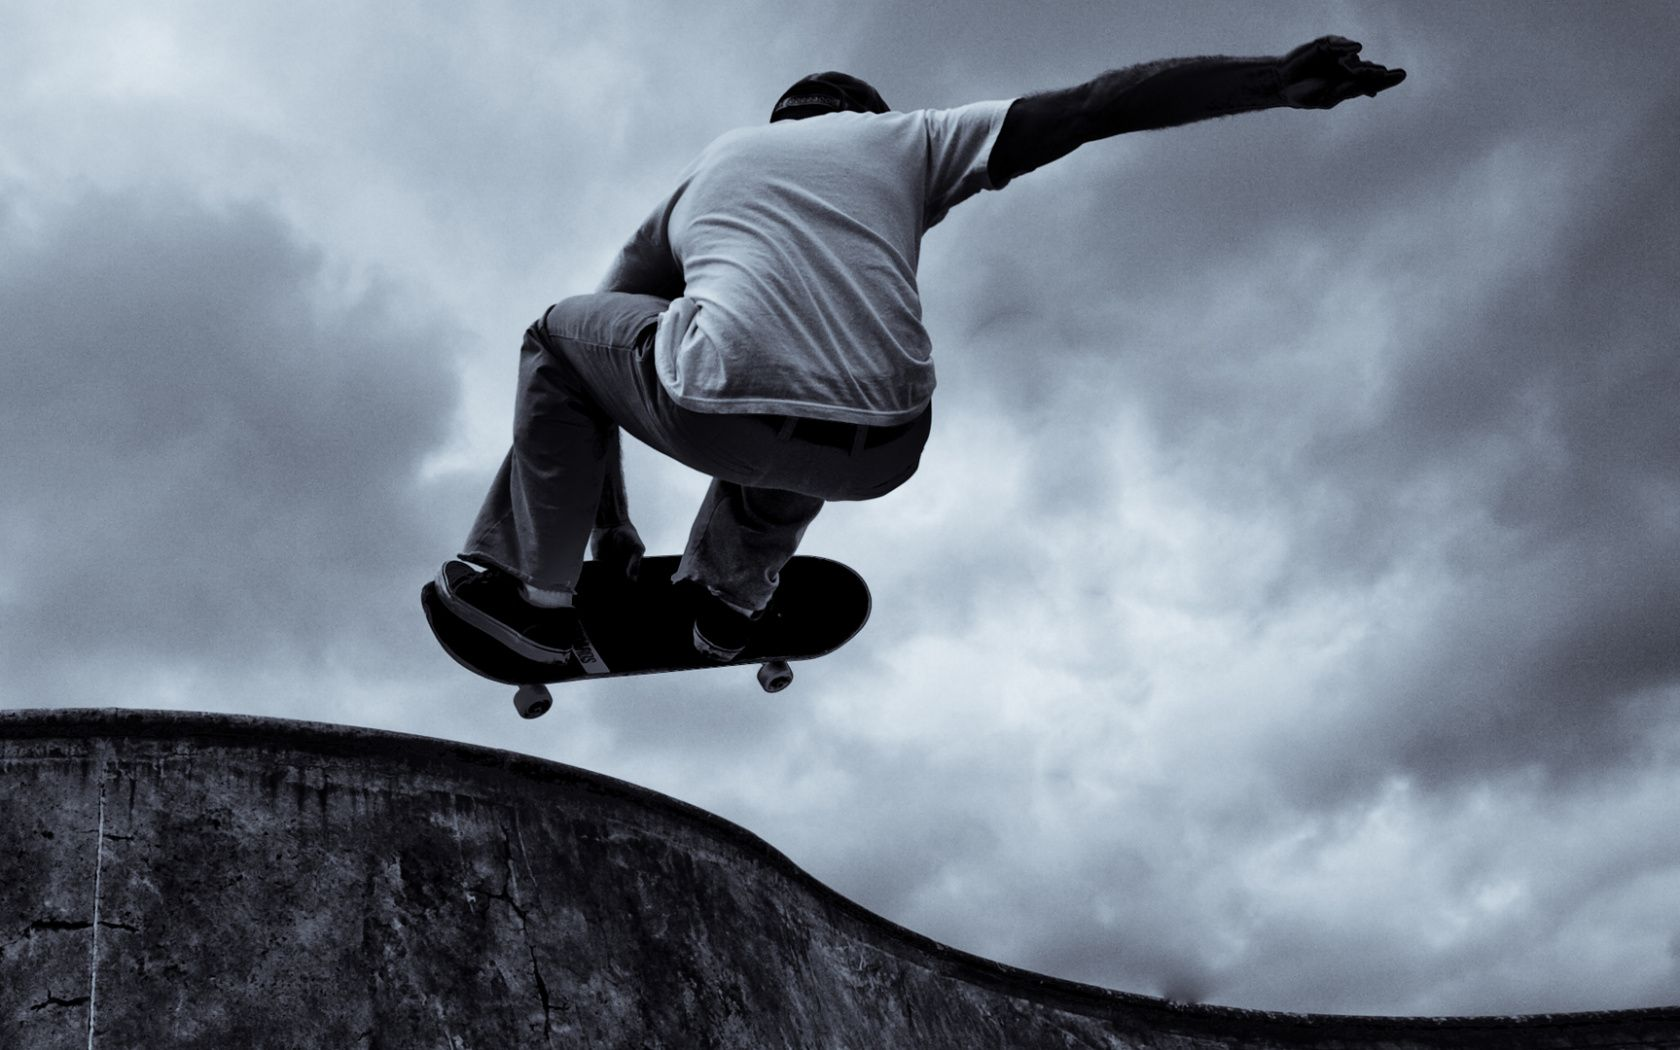 Skatepark Collection See All Wallpapers Wallpapers Background Sport Skate Park Background Wallpaper Pictures